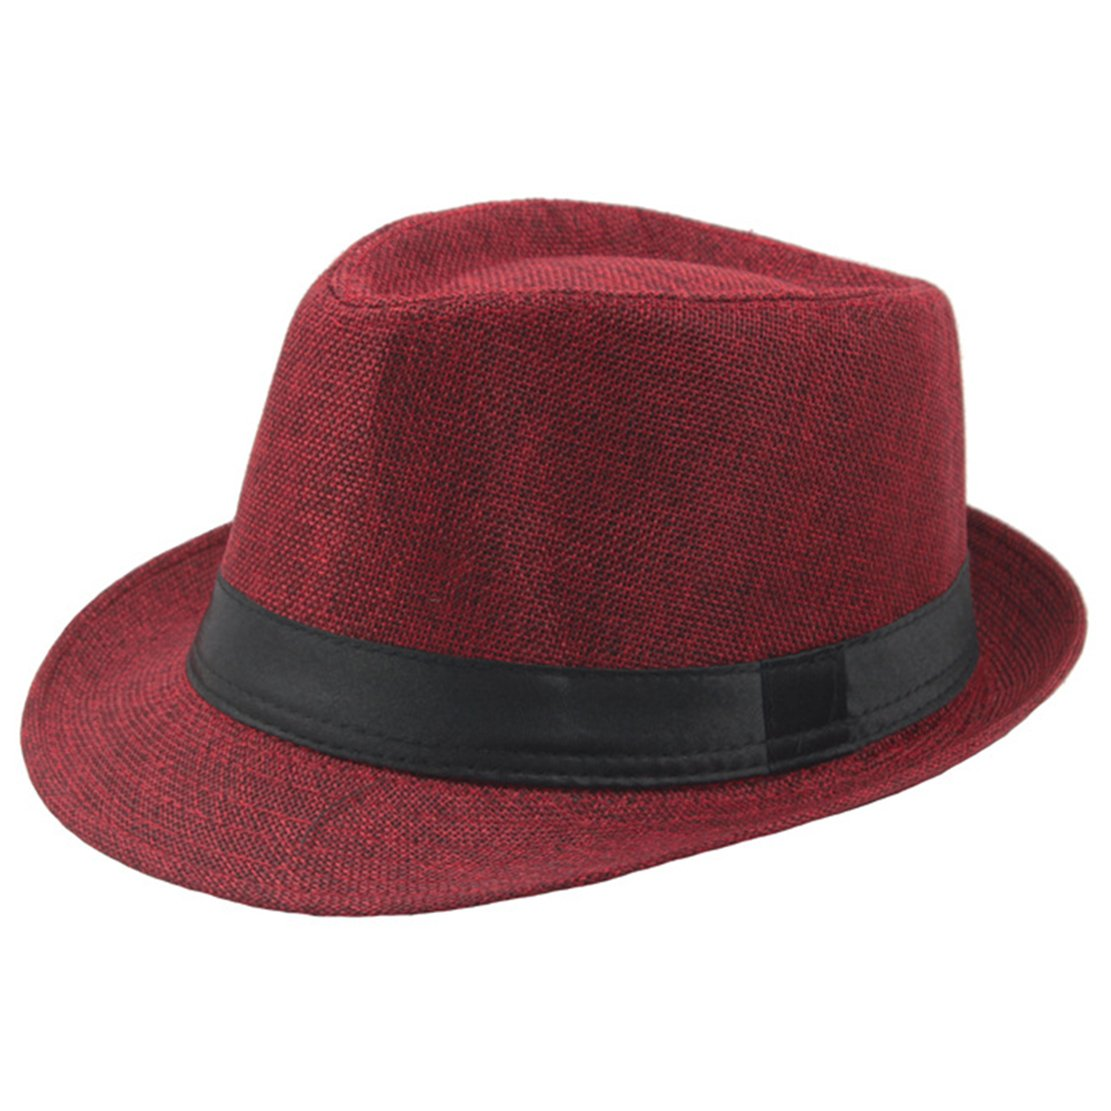 Coucoland Fedora Hats for Men Panama Summer Beach Sun Jazz Cap Linen Panama Hat Trilby Holiday Traveling Hat